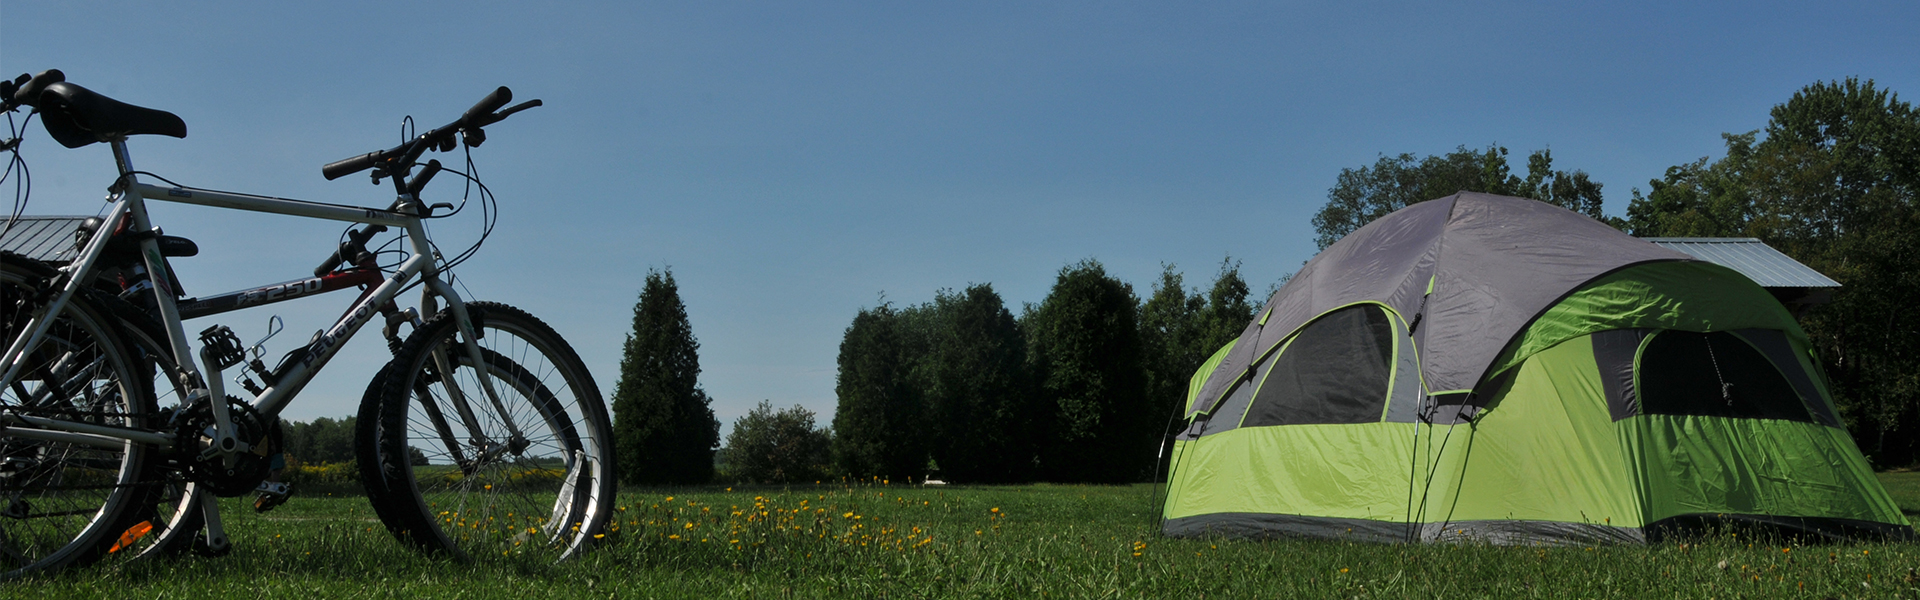 Camping Union - Camping Lac-Saint-Michel: Visit one of the most beautiful camping sites in Quebec!